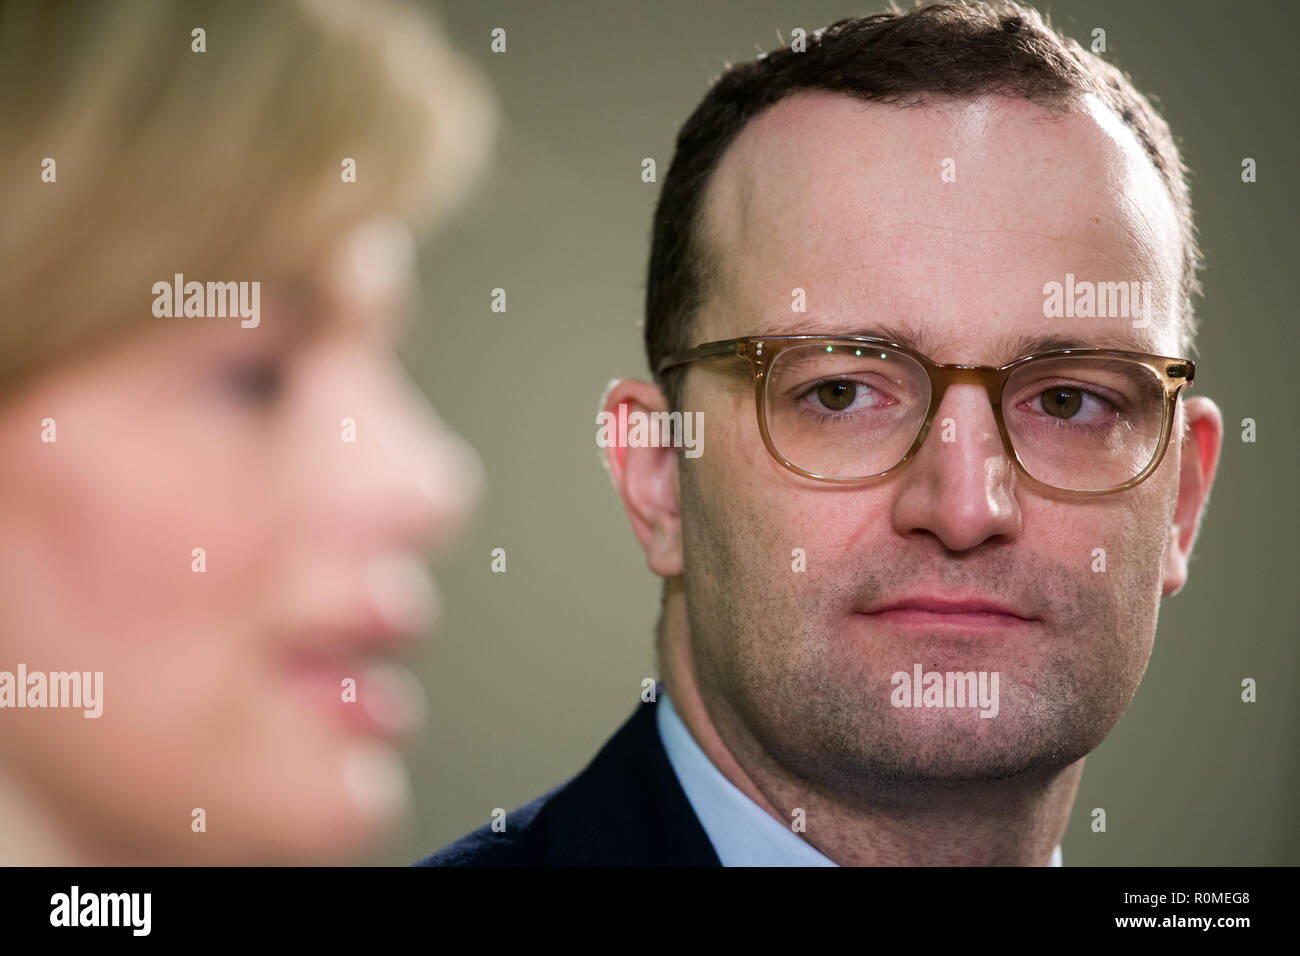 Berlin, Germany. 06th Nov, 2018. Jens Spahn (CDU), Federal Minister of Health, is at a press conference with Julia Klöckner (l, CDU), Federal Minister of Food and Agriculture, on the occasion of the presentation of a study by the German Nutrition Society on cost and price structures in school catering at the Federal Congress on School Catering. More than three million pupils at all-day schools eat lunch every day at school. Credit: Bernd von Jutrczenka/dpa/Alamy Live News - Stock Image